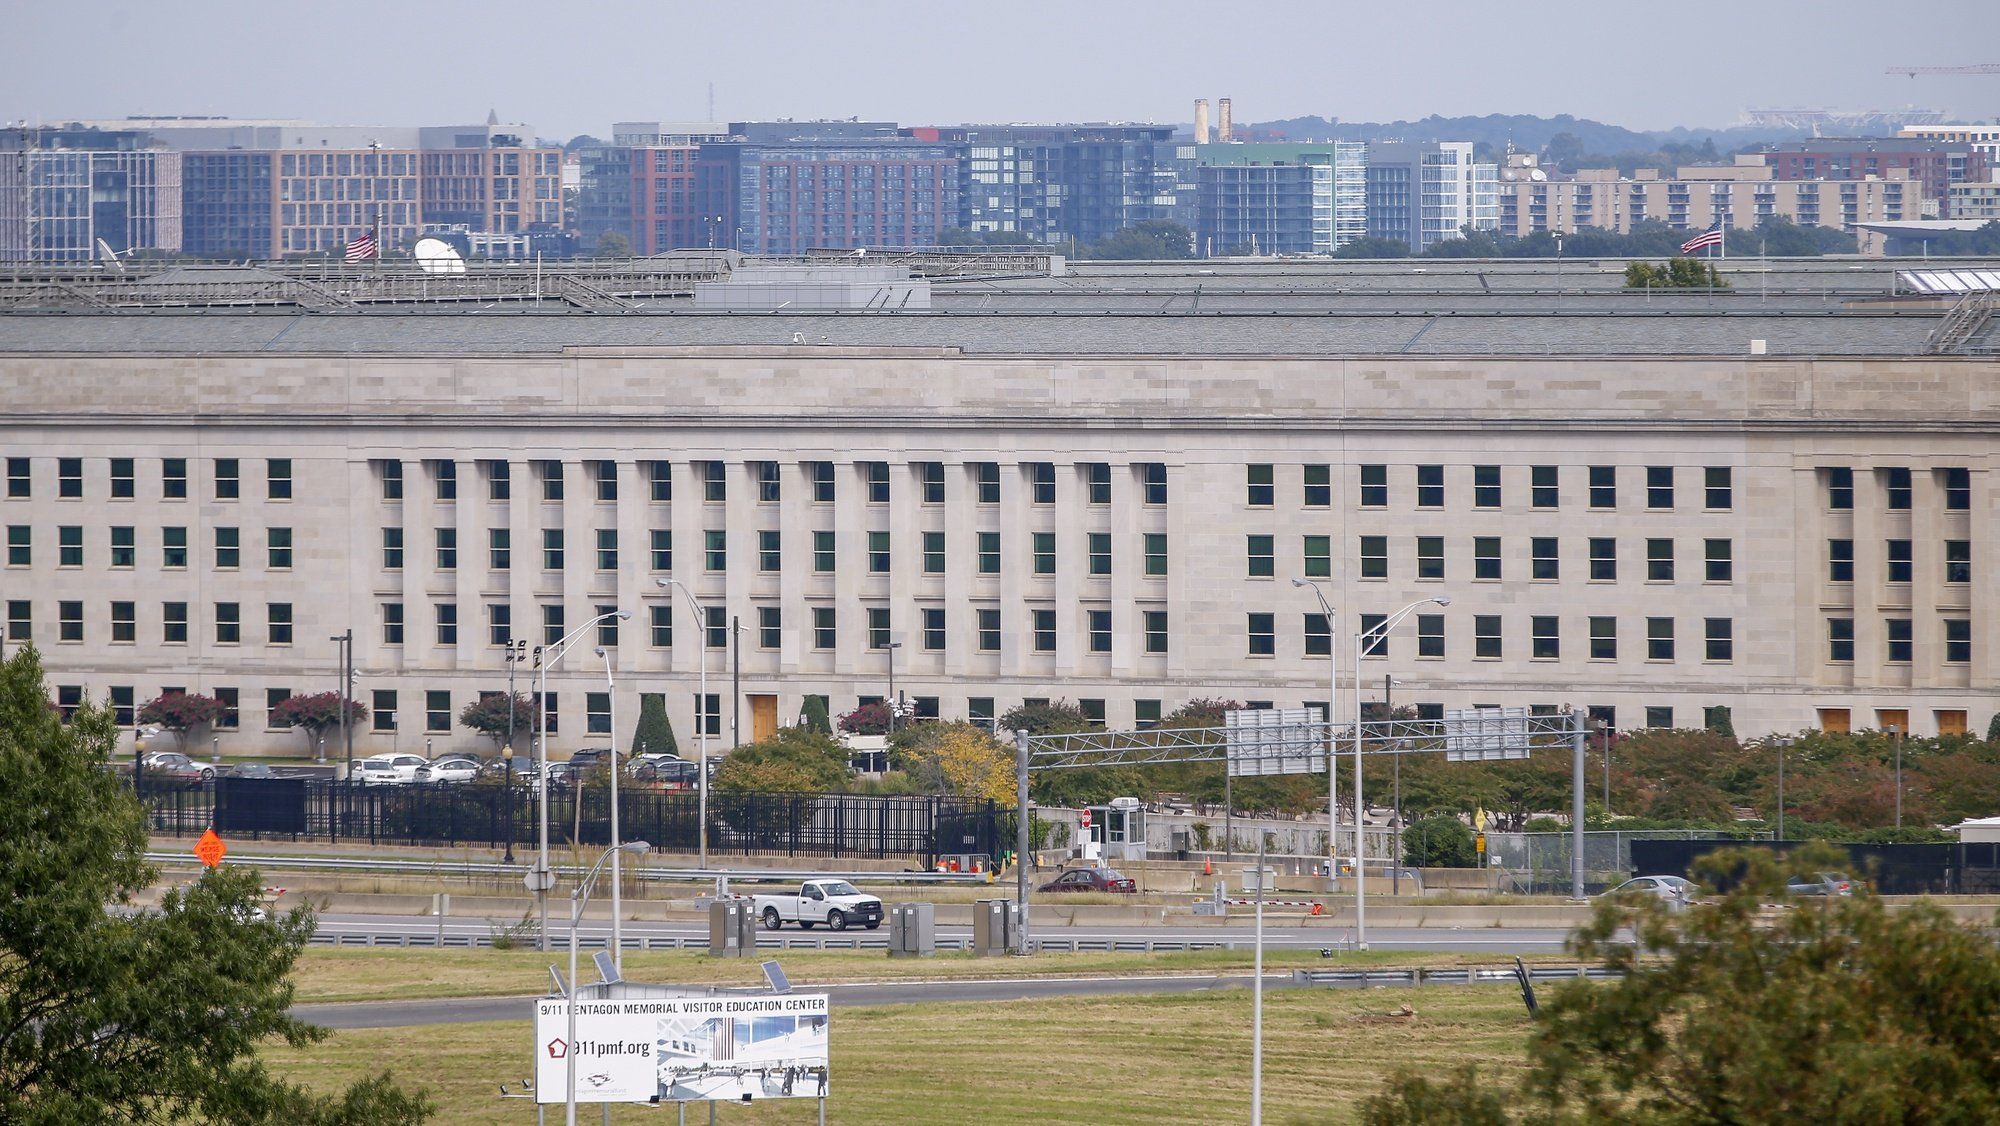 epa07064866 The Pentagon building in Arlington, Virginia, USA, 02 October 2018. Two pieces of mail delivered to the Pentagon mail facility on 01 October 2018 have initially tested positive for ricin, according to US defense officials.  EPA/ERIK S. LESSER